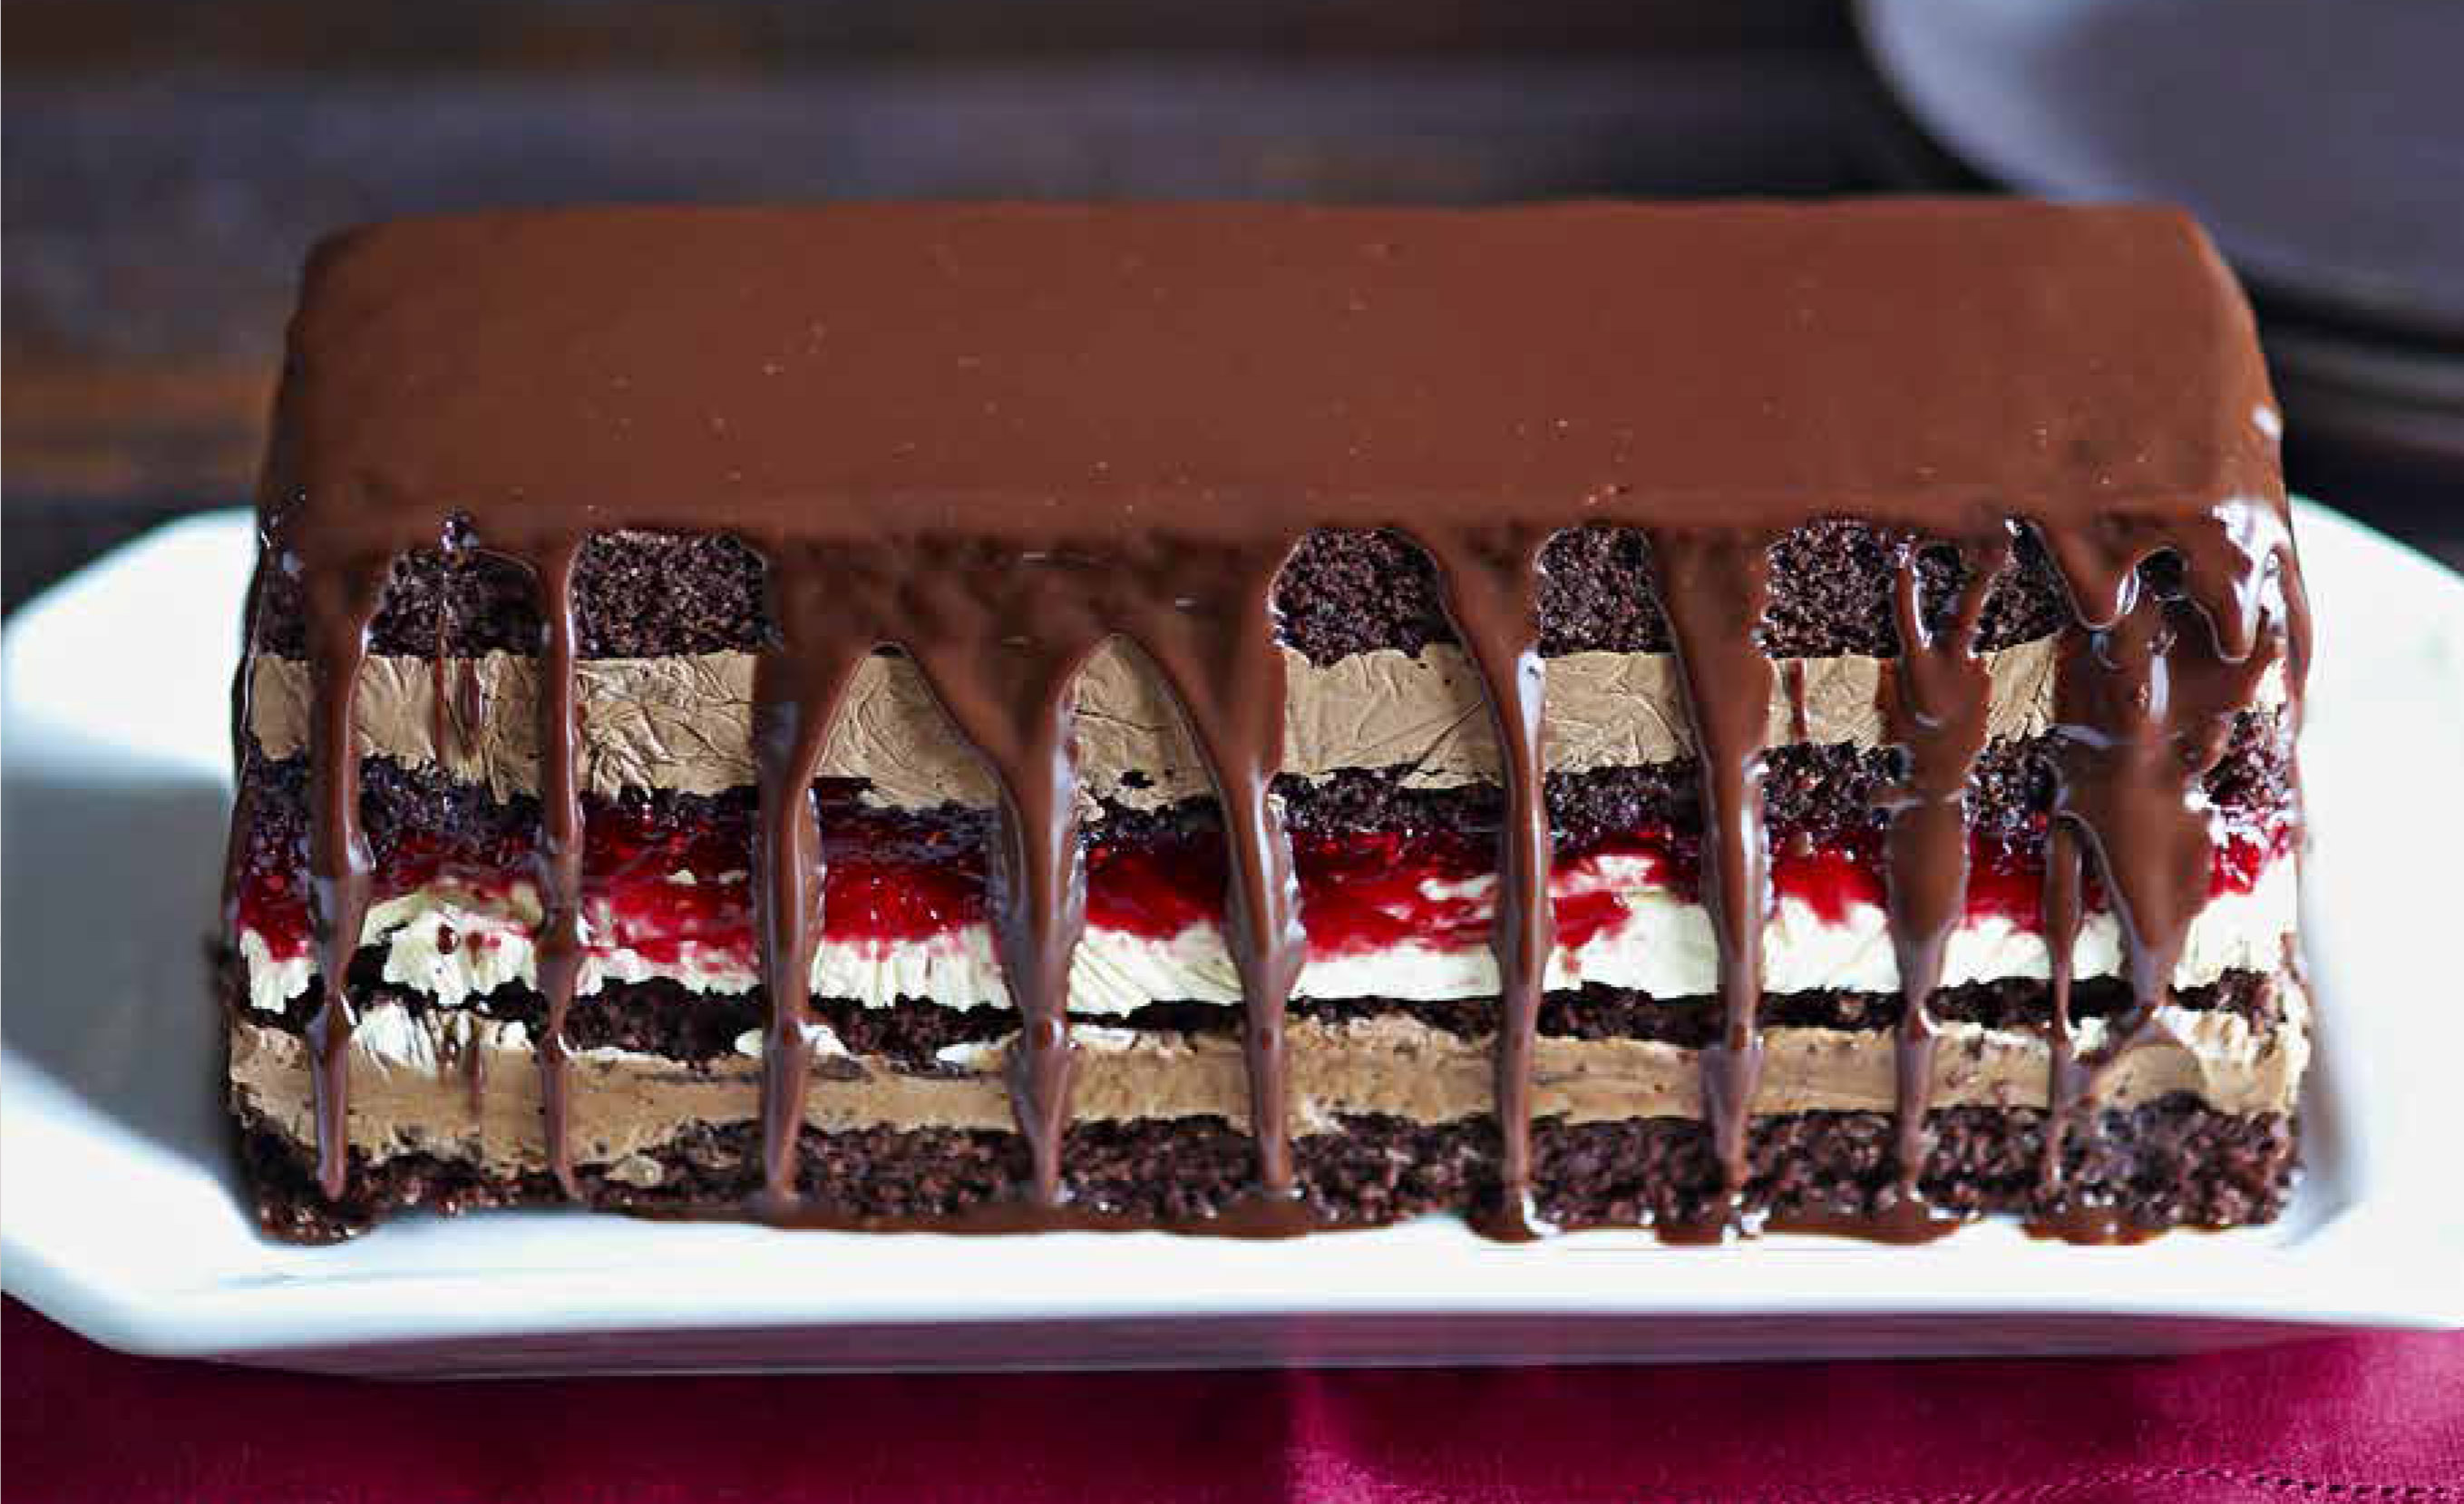 An image of olive magazine's peanut butter and jam terrine